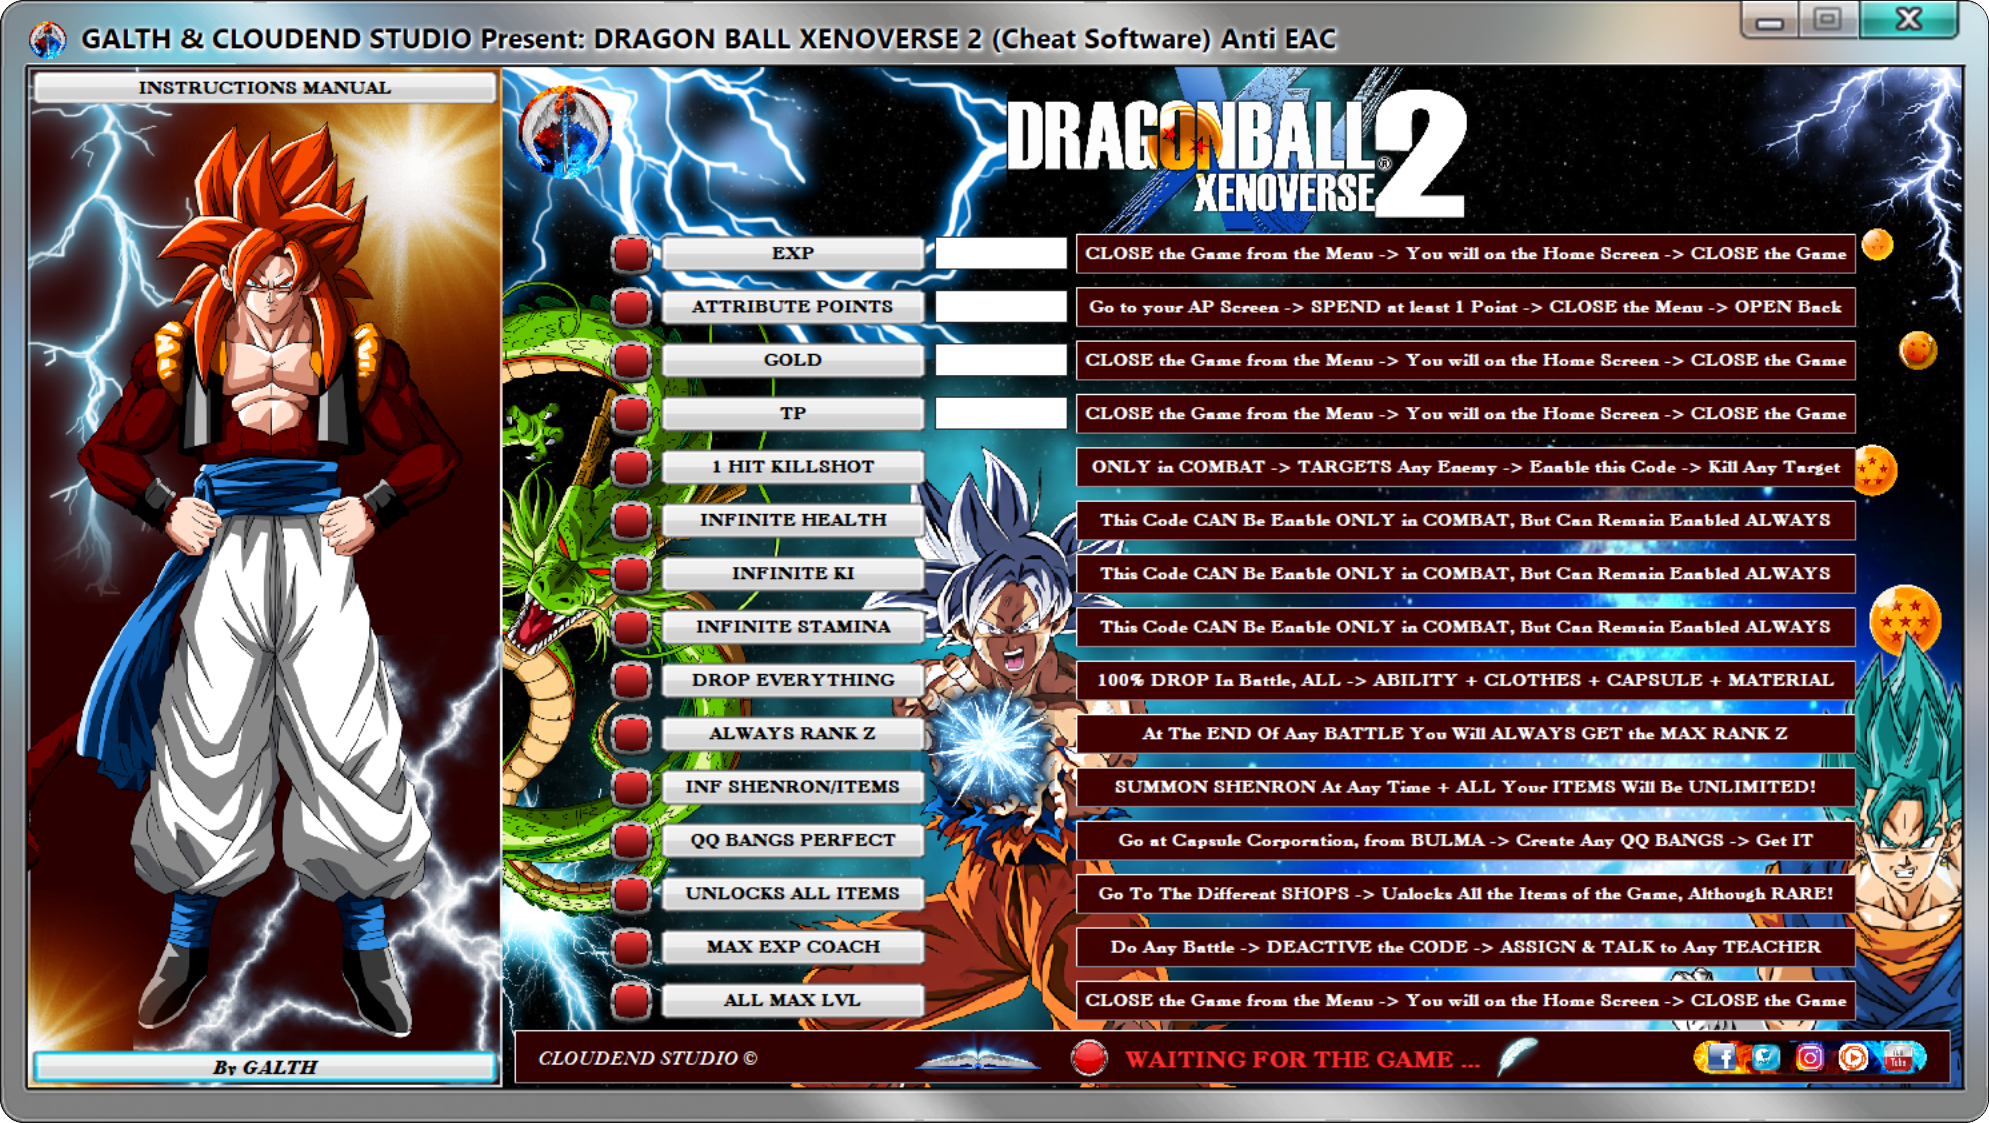 DRAGON BALL XENOVERSE 2 Cheat Software (Ver 1 13 00) + ANTI EAC SYSTEM